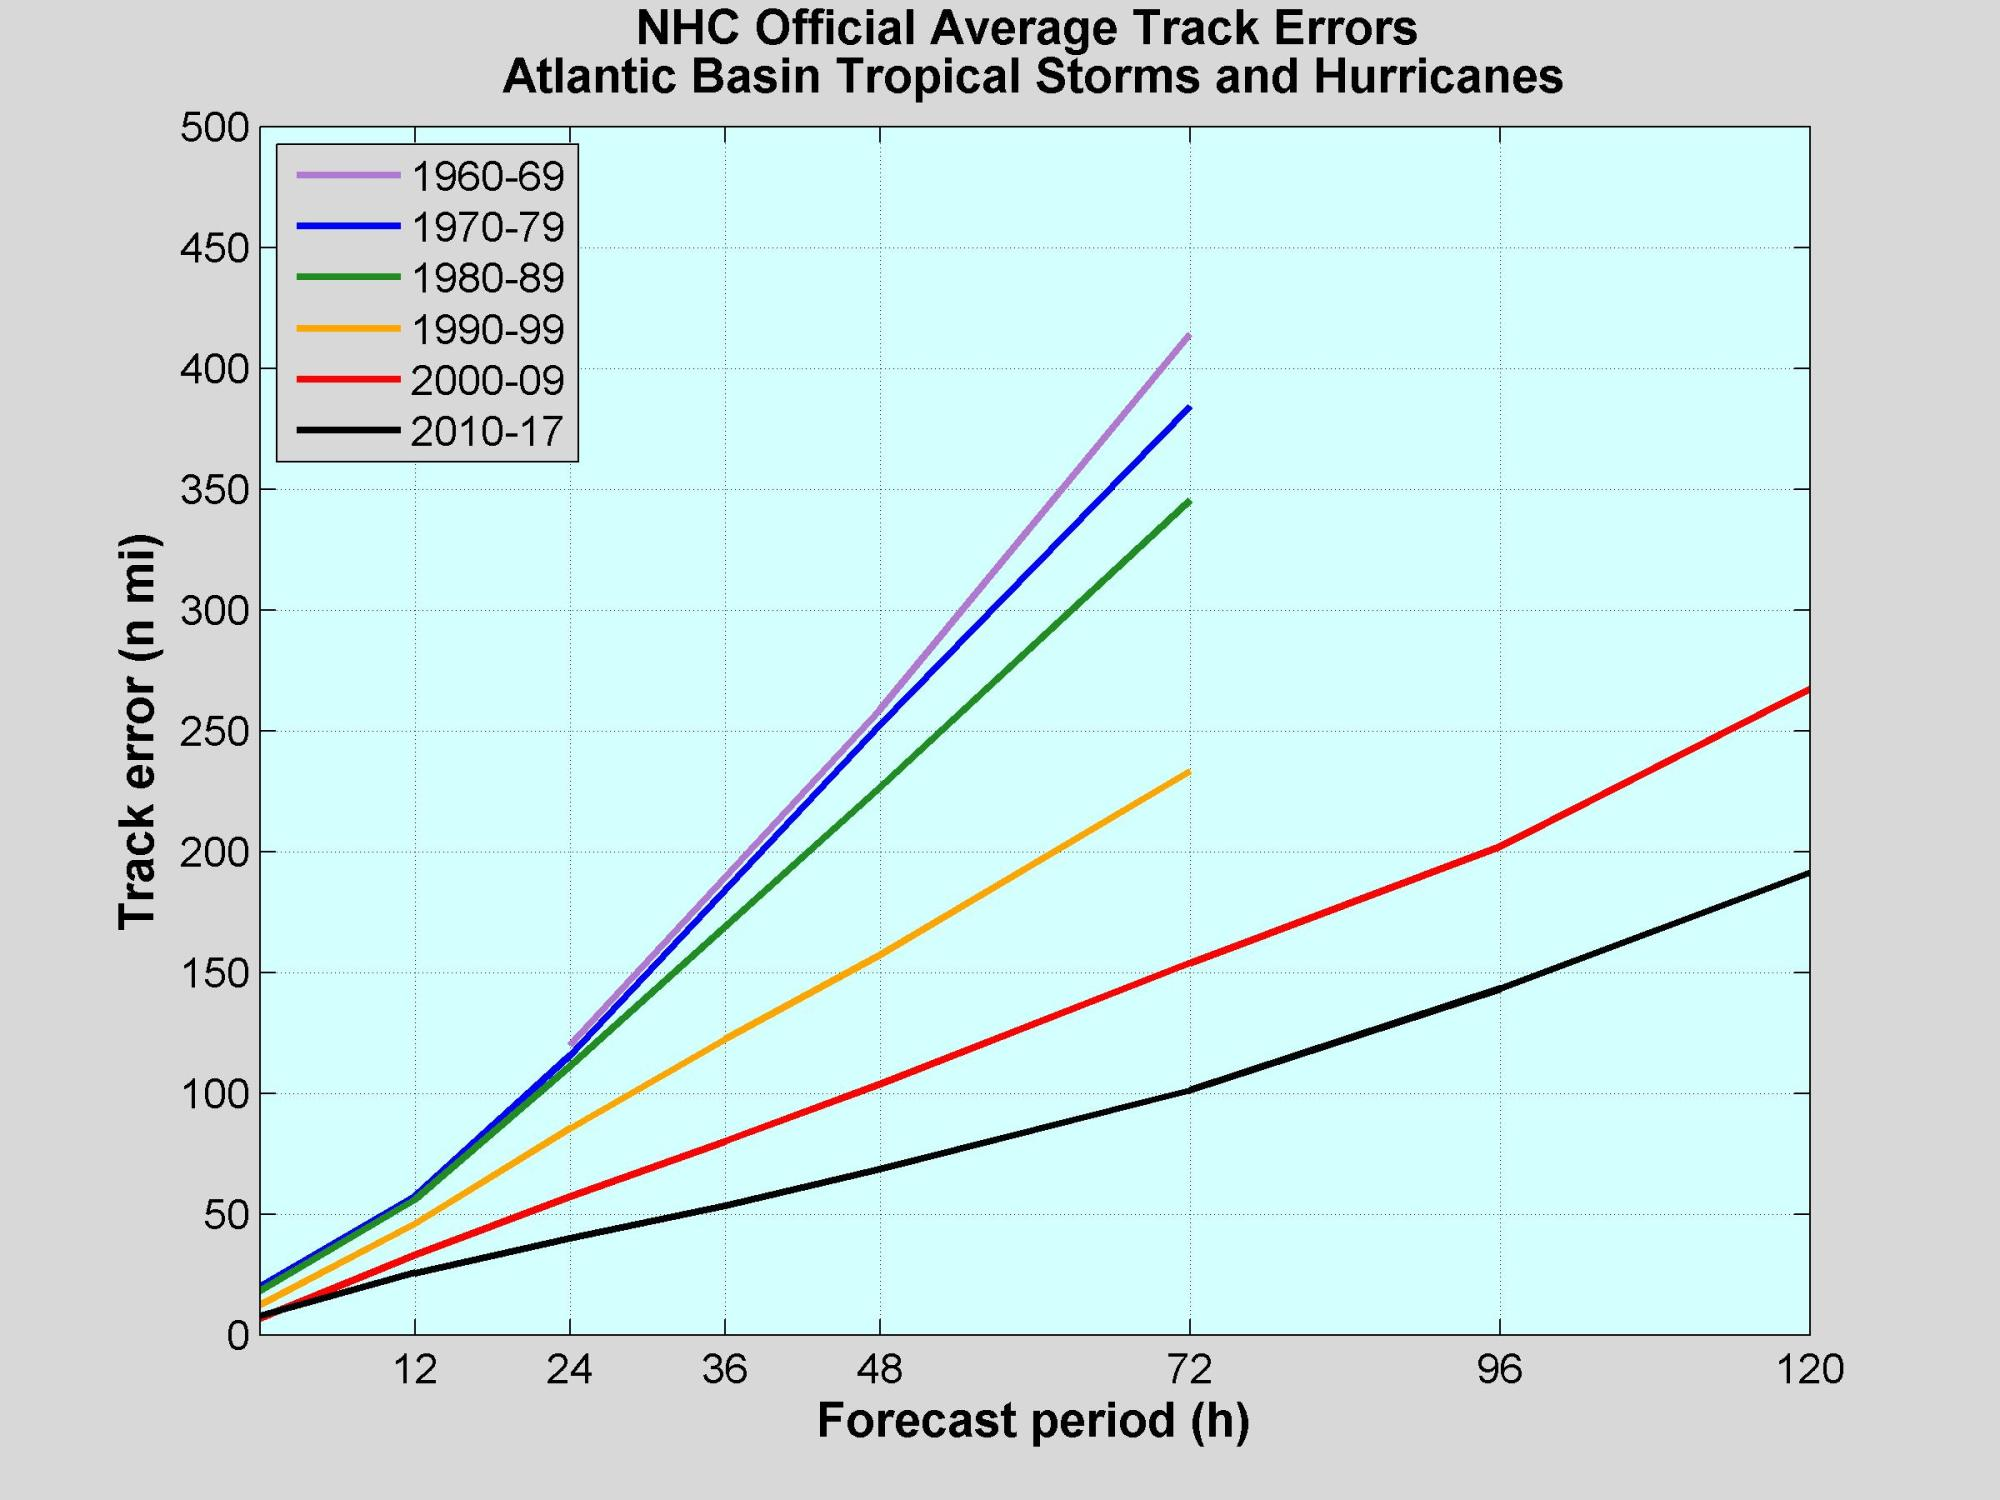 hight resolution of nhc official track errors in nautical miles for atlantic tropical storms and hurricanes by decade